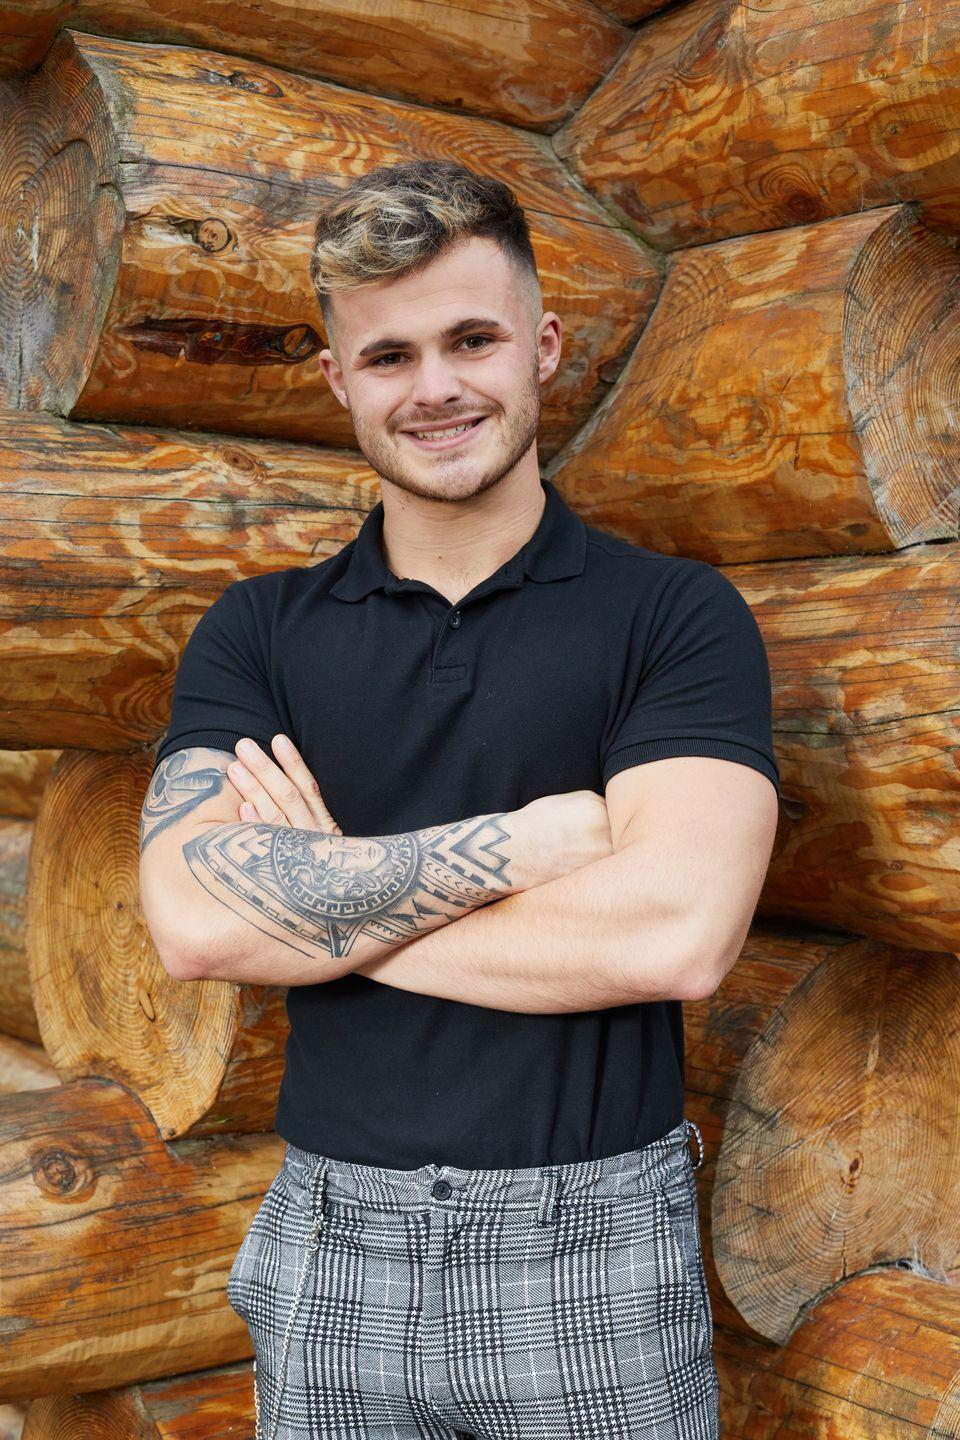 "<p>Joel is 22 years old and from Swansea. He works as a bin man.</p><p>He says he's not concerned about dating on camera, insisting: ""You've just got to be yourself. Just don't think about it, your mindset is on your date.""</p><p>On his celebrity crush, Joel revealed: ""Lucie Donlan from Love Island. I was like, 'Oh my god, she surfs!' I just like girls who do any sports activities.""</p>"